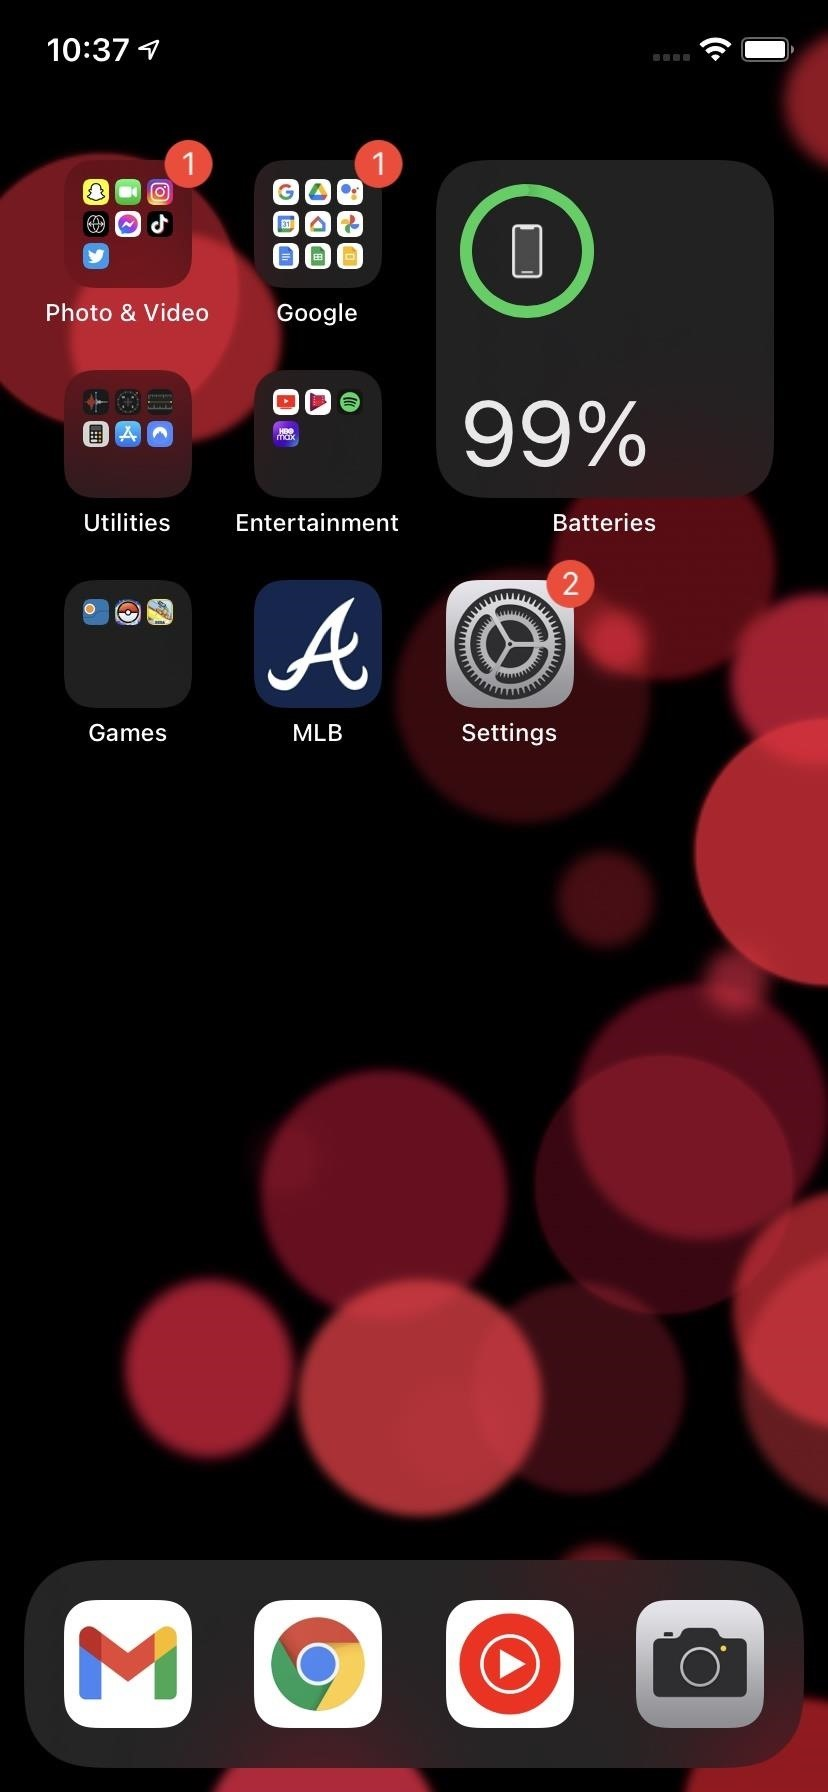 How to Protect Your iPhones & iPads by Installing Apple's Emergency 14.8 iOS Security Update